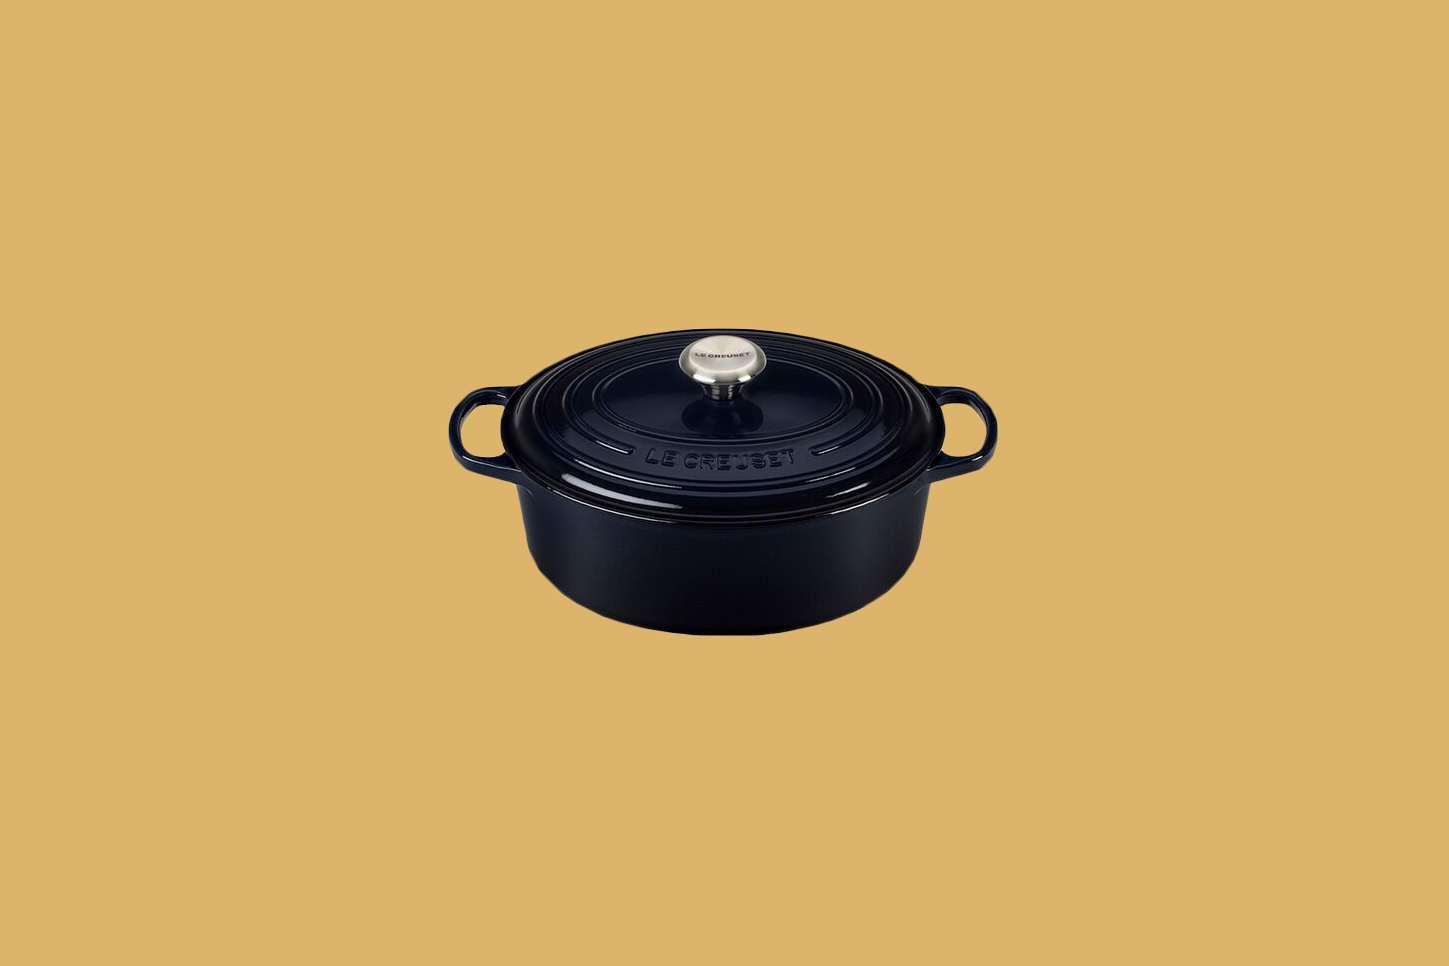 Le Creuset Five-Quart Oval Dutch Oven in Cosmos